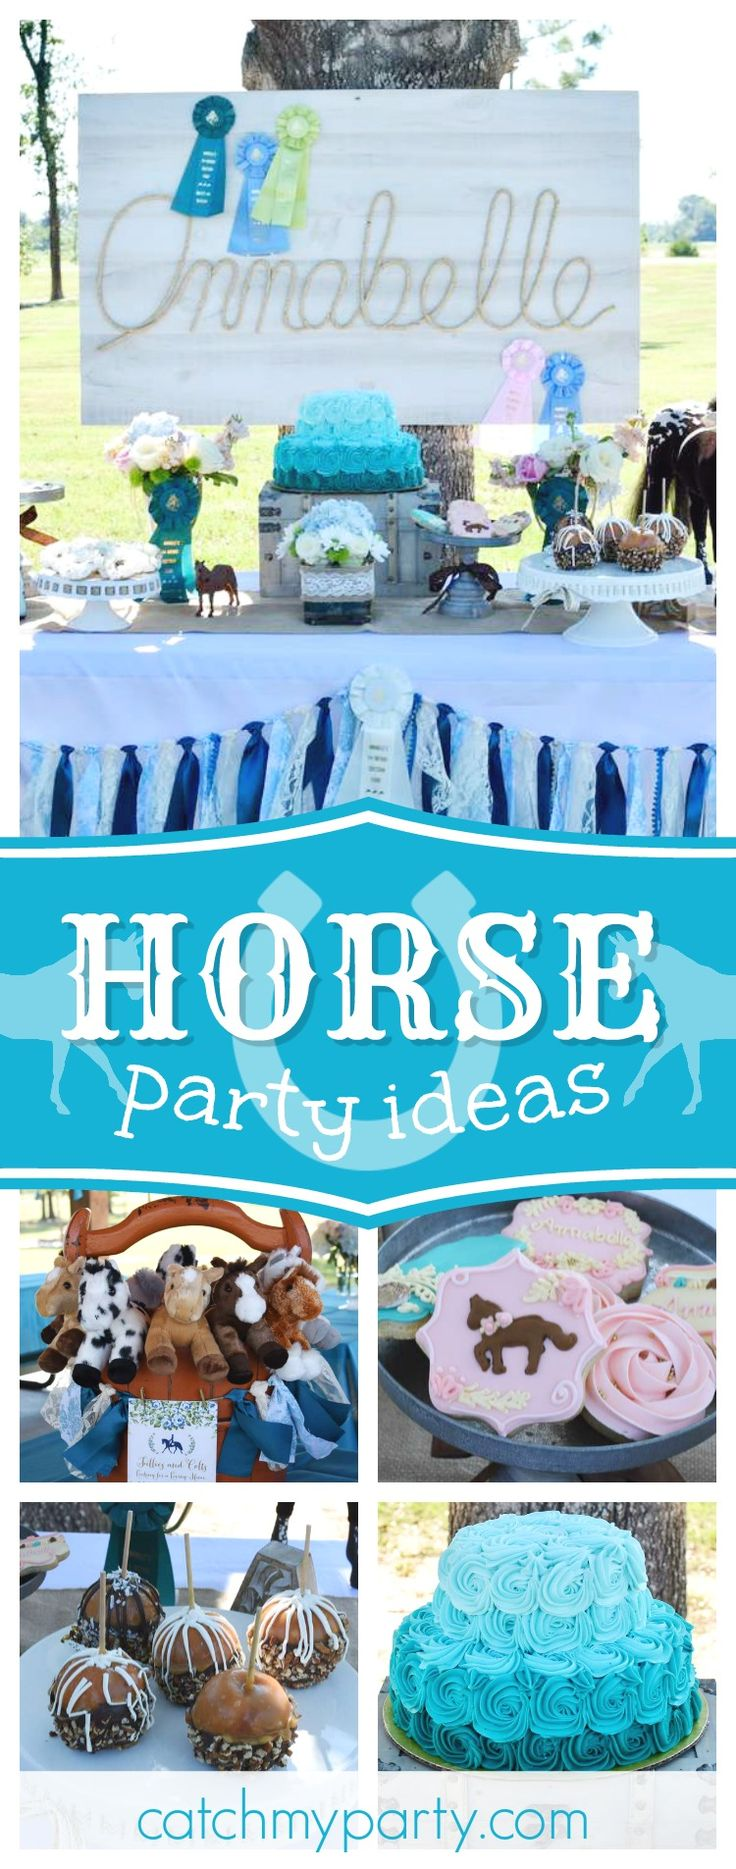 Don't miss this wonderful Equestrian horse themed birthday party! The rustic dessert table is gorgeous!! See more party ideas and share yours at CatchMyParty.com #birthdayparty #horse